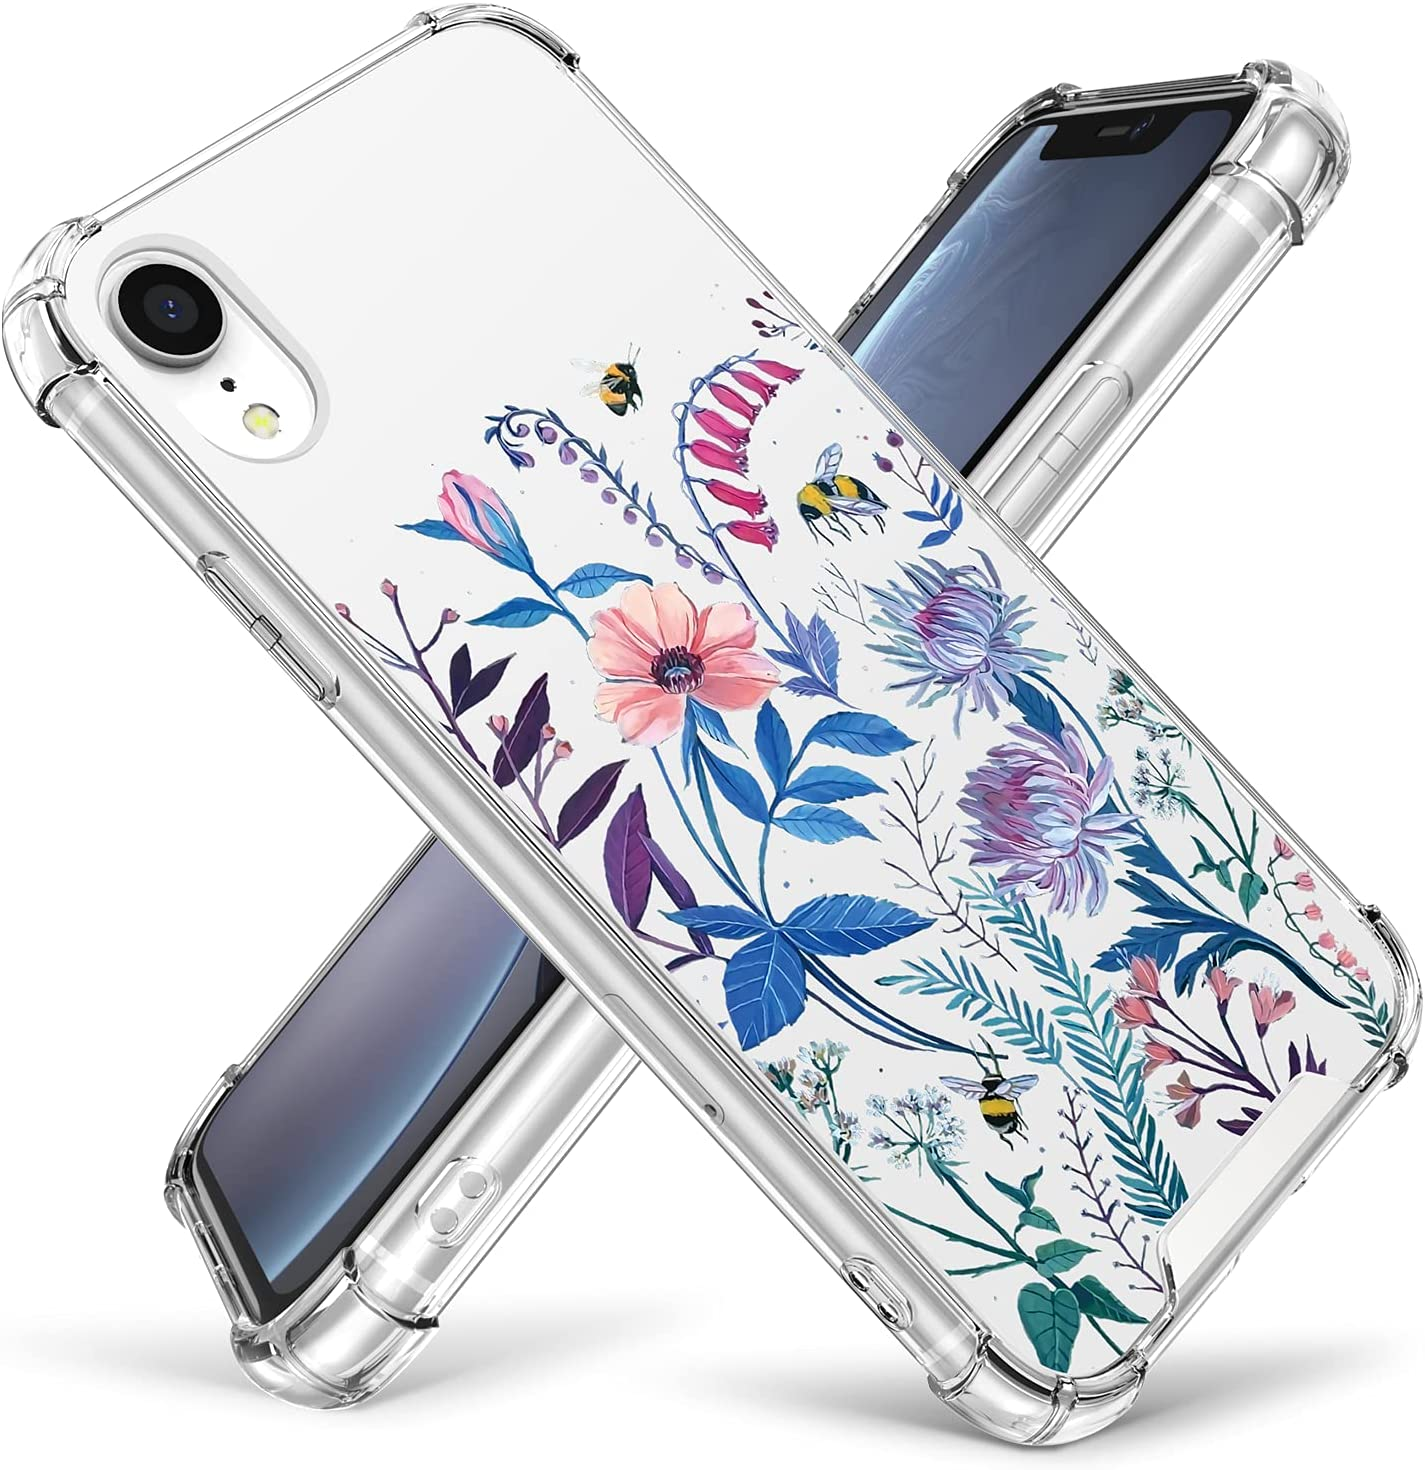 Cutebe Case for iPhone XR, Shockproof Series Hard PC+ TPU Bumper Protective Case for Apple iPhone XR 6.1 Inch 2018 Release Crystal